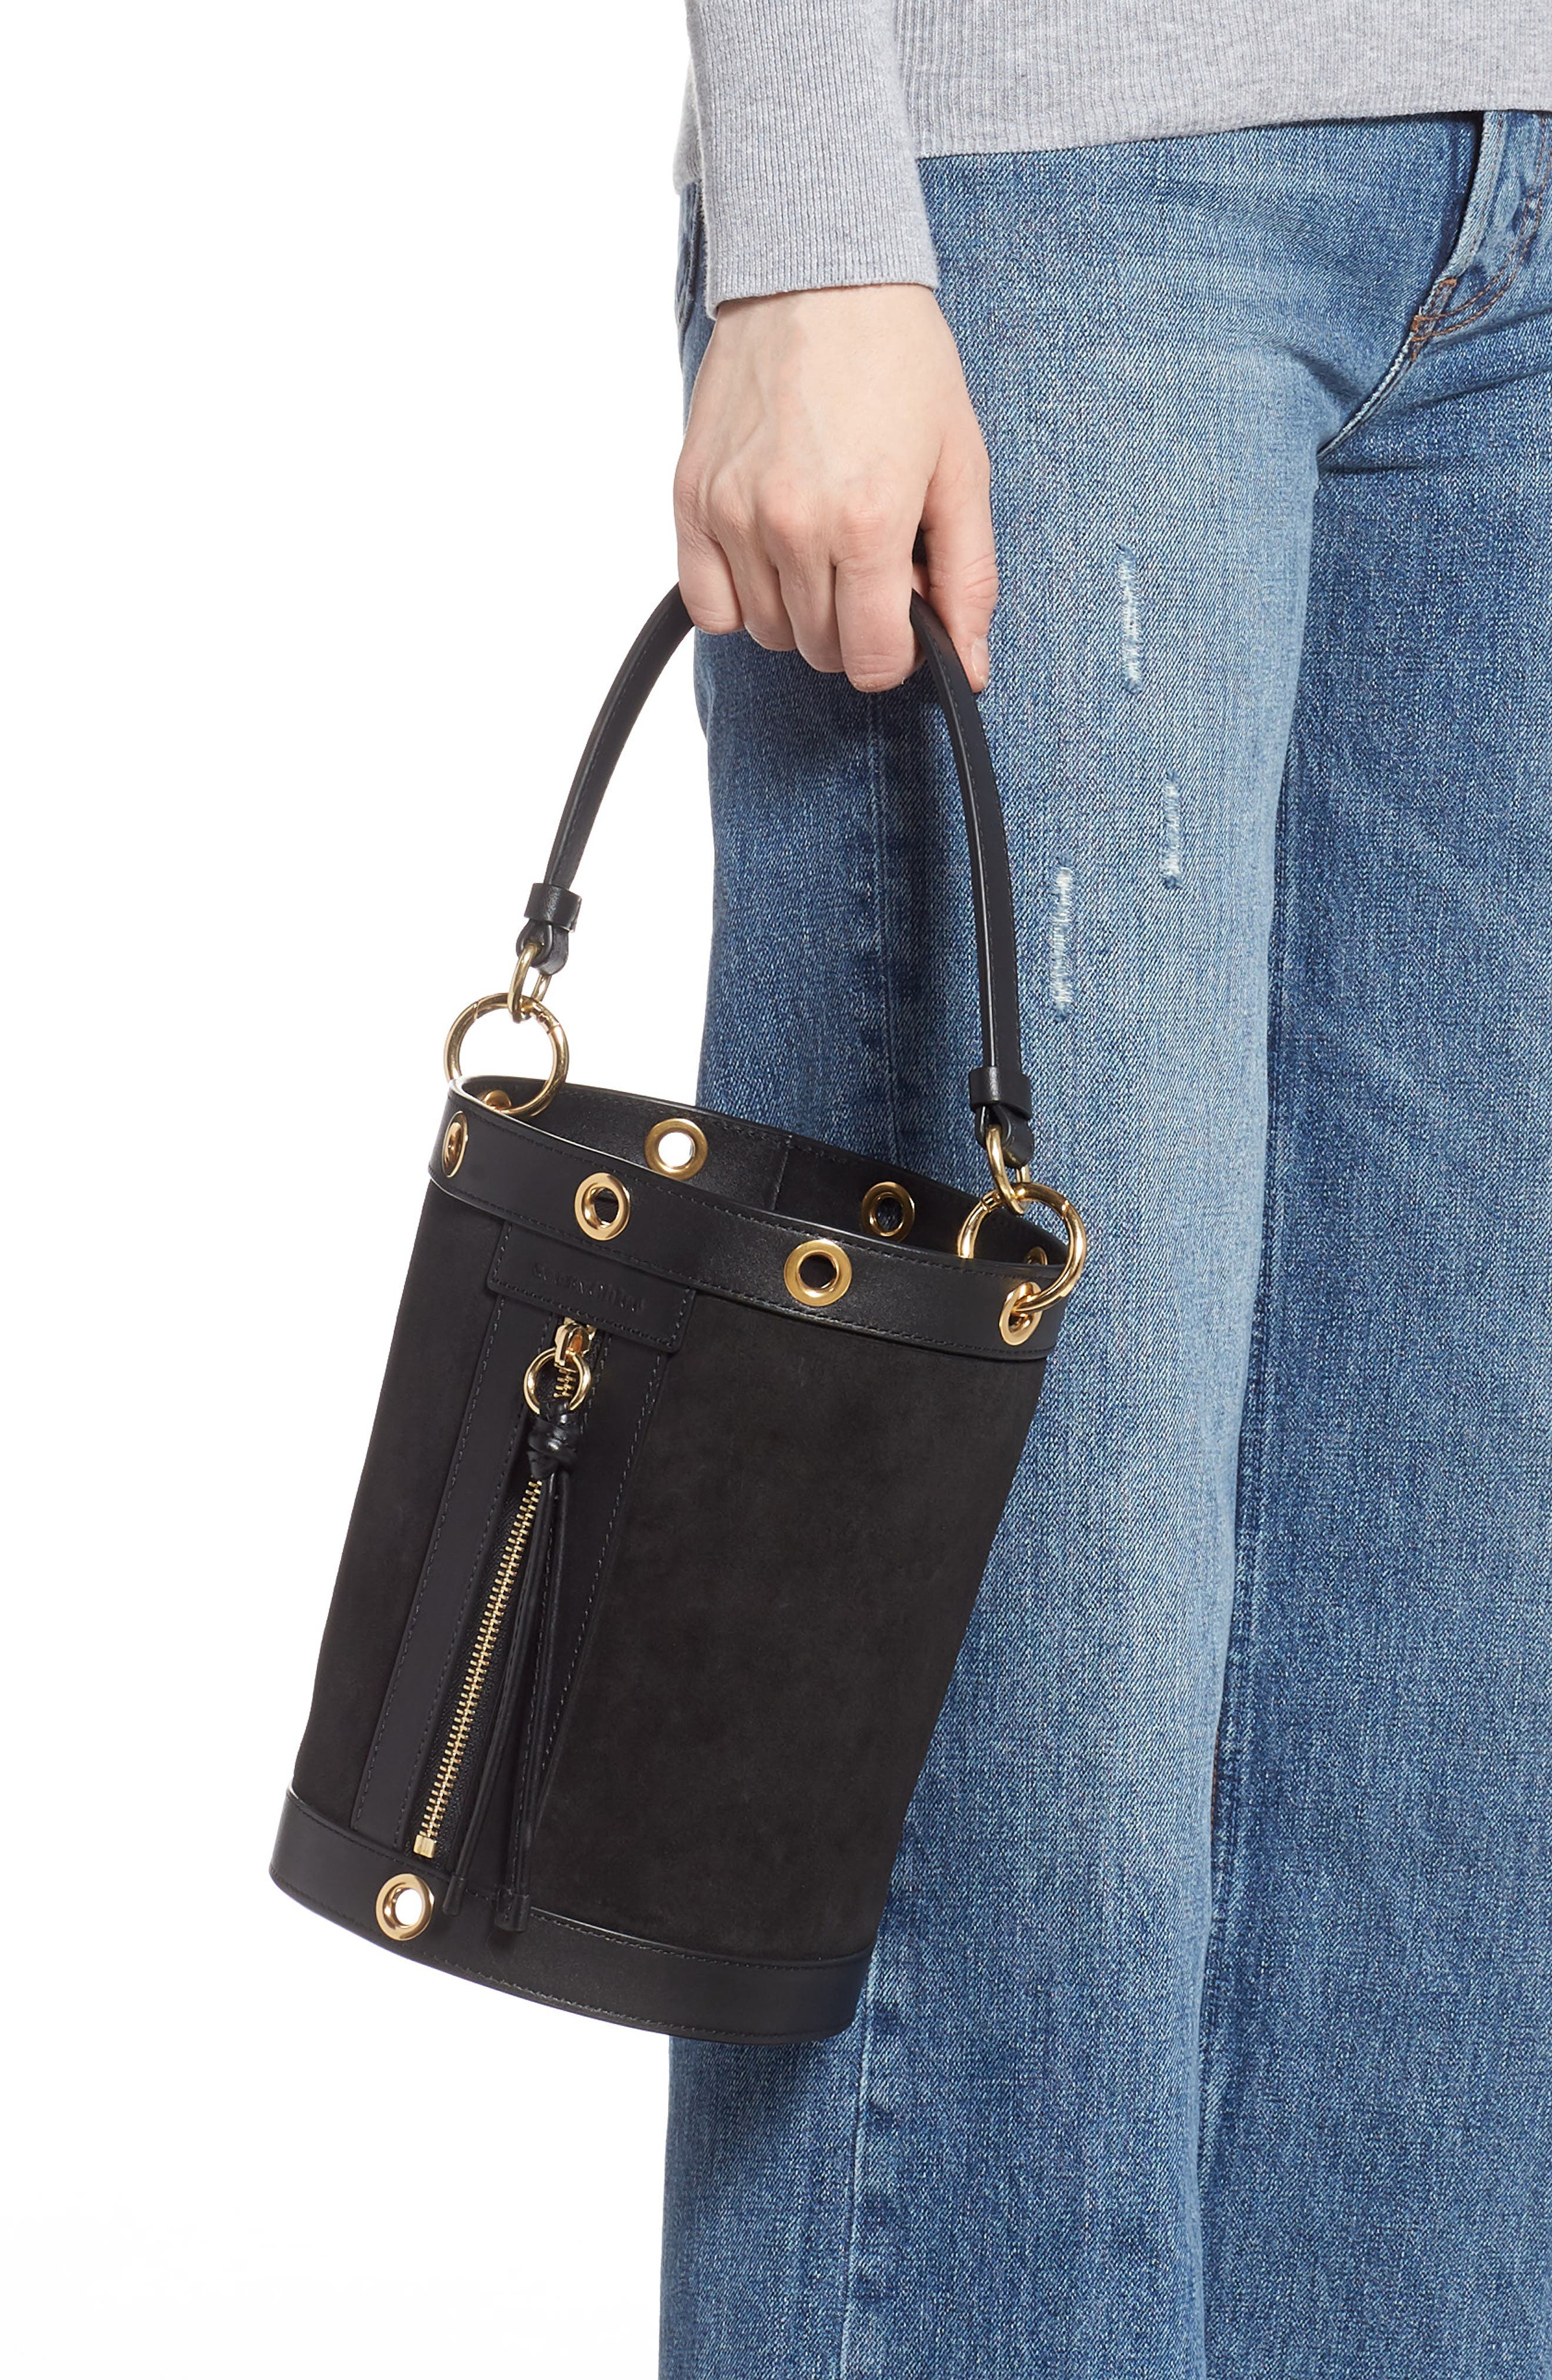 SEE BY CHLOÉ, Debbie Leather Bucket Bag, Alternate thumbnail 3, color, 001